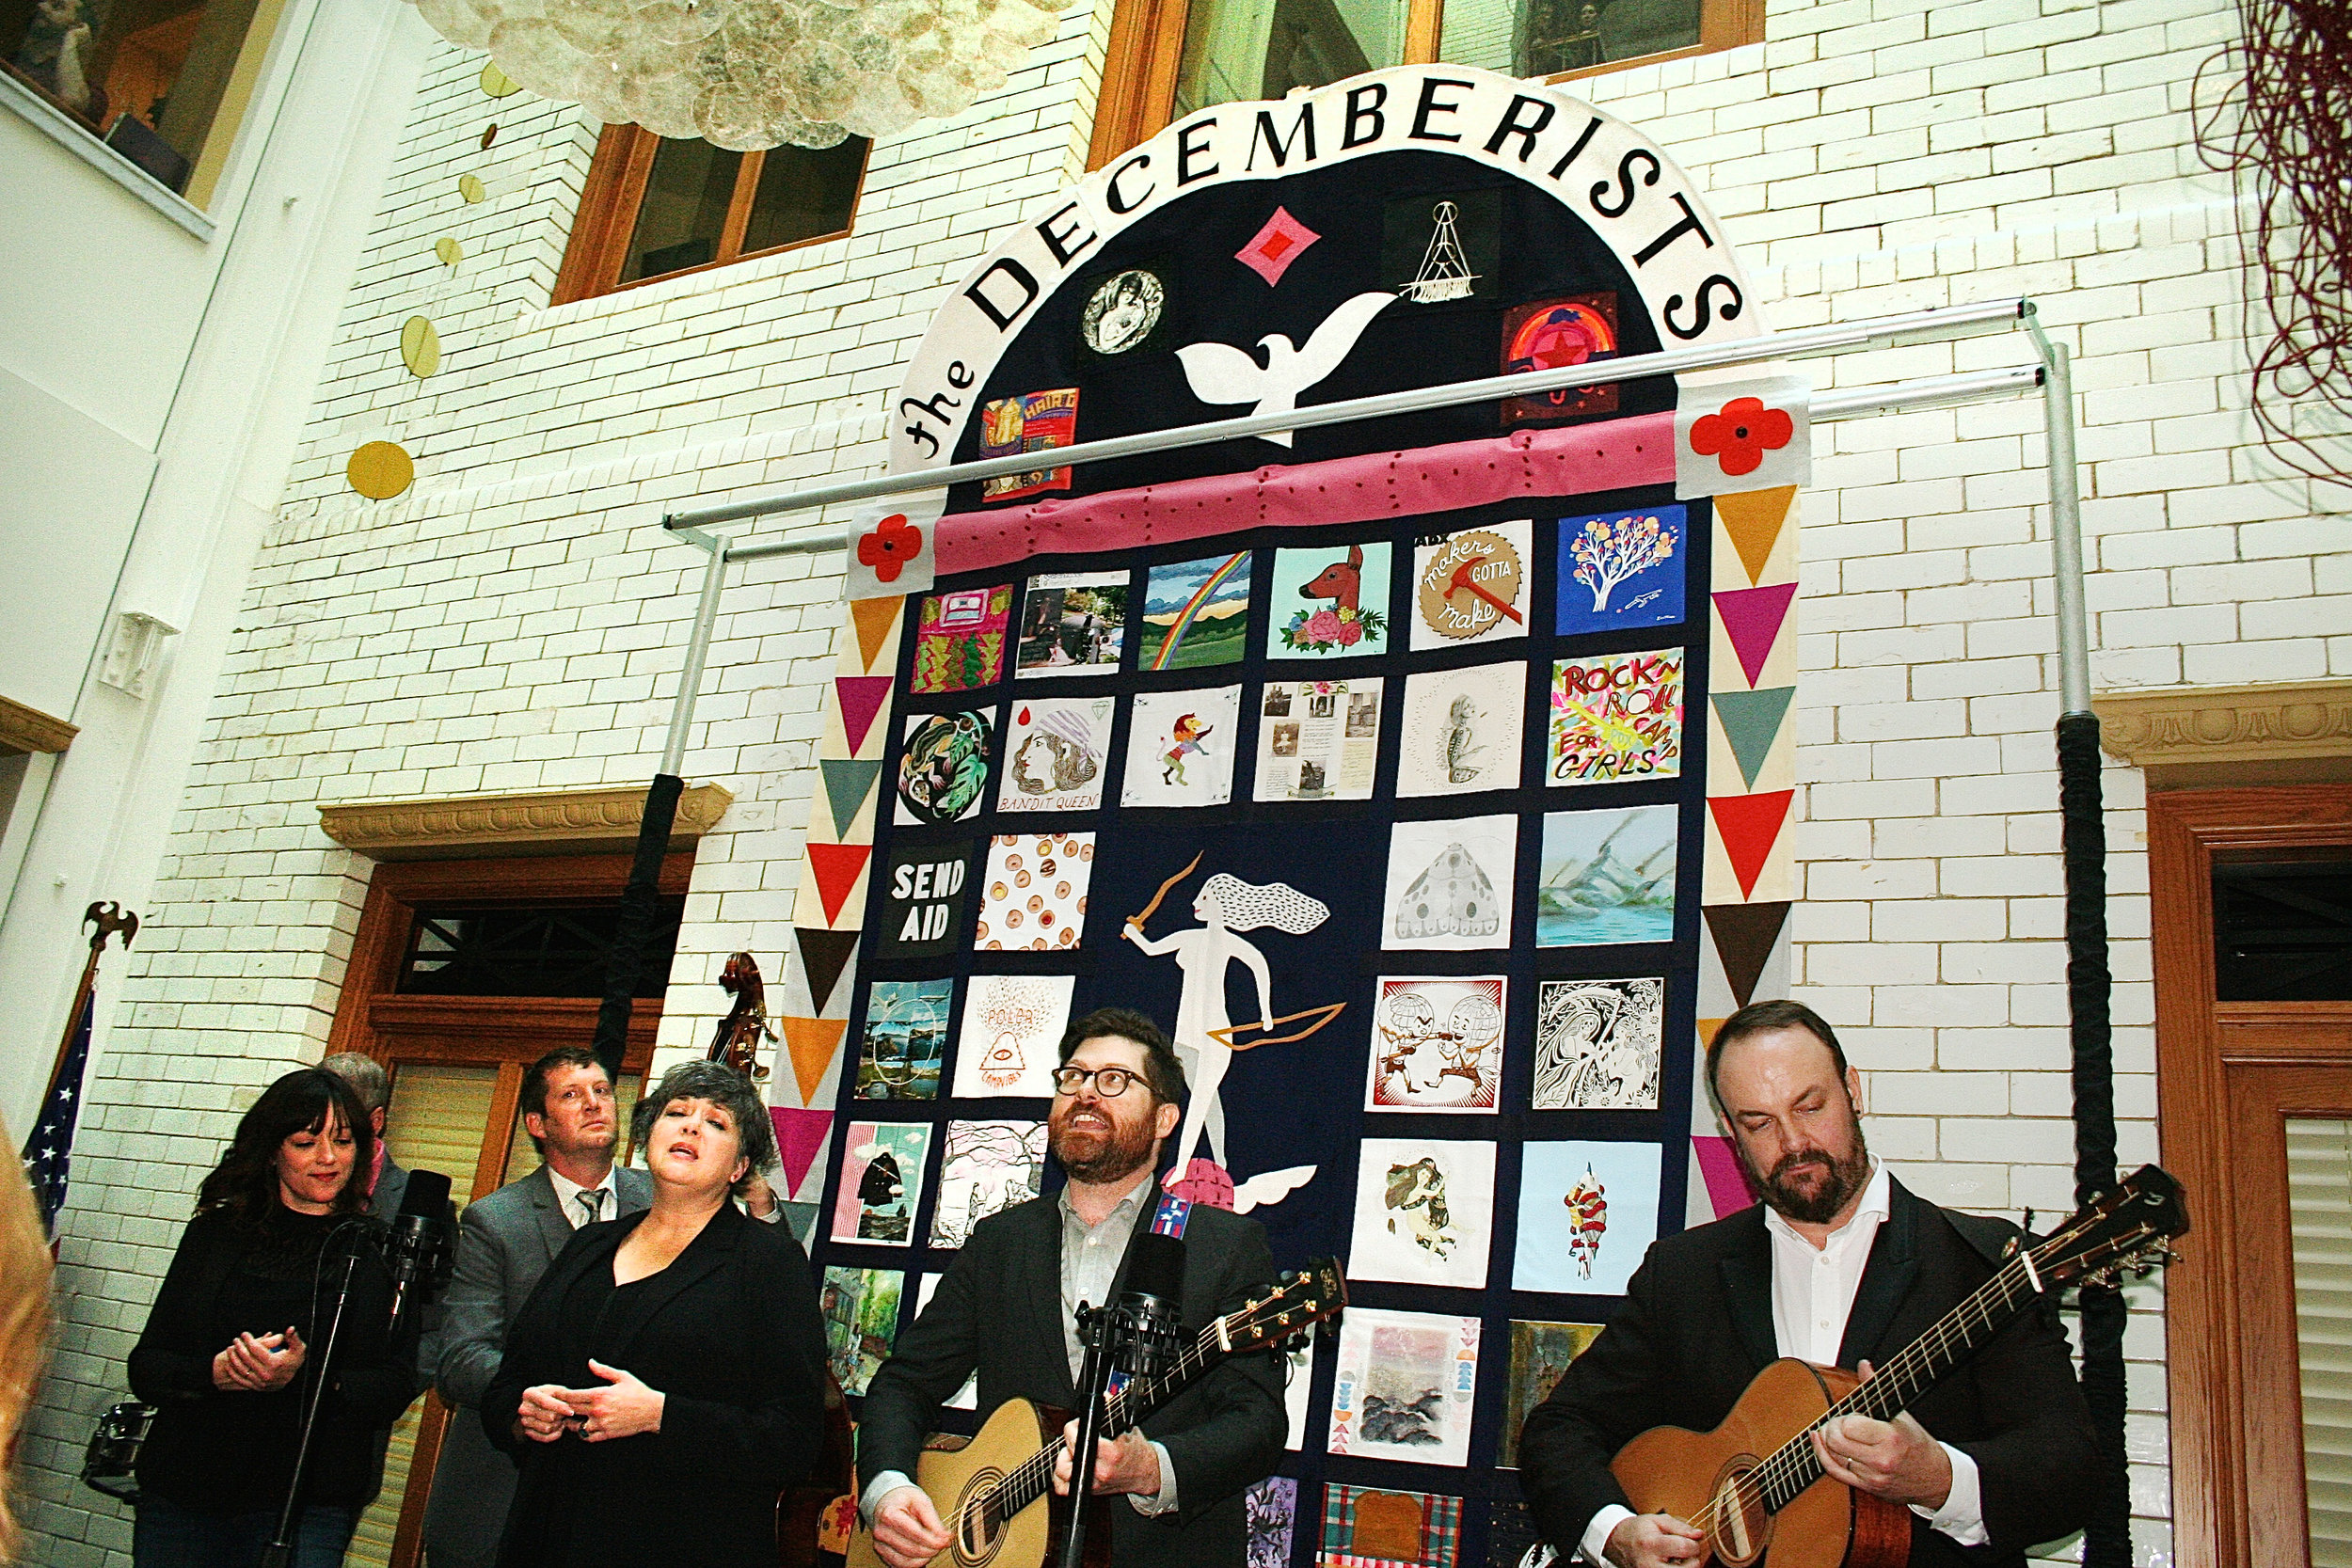 Art quilt displayed at Decemberists' Day celebration and proclamation at Portland City Hall